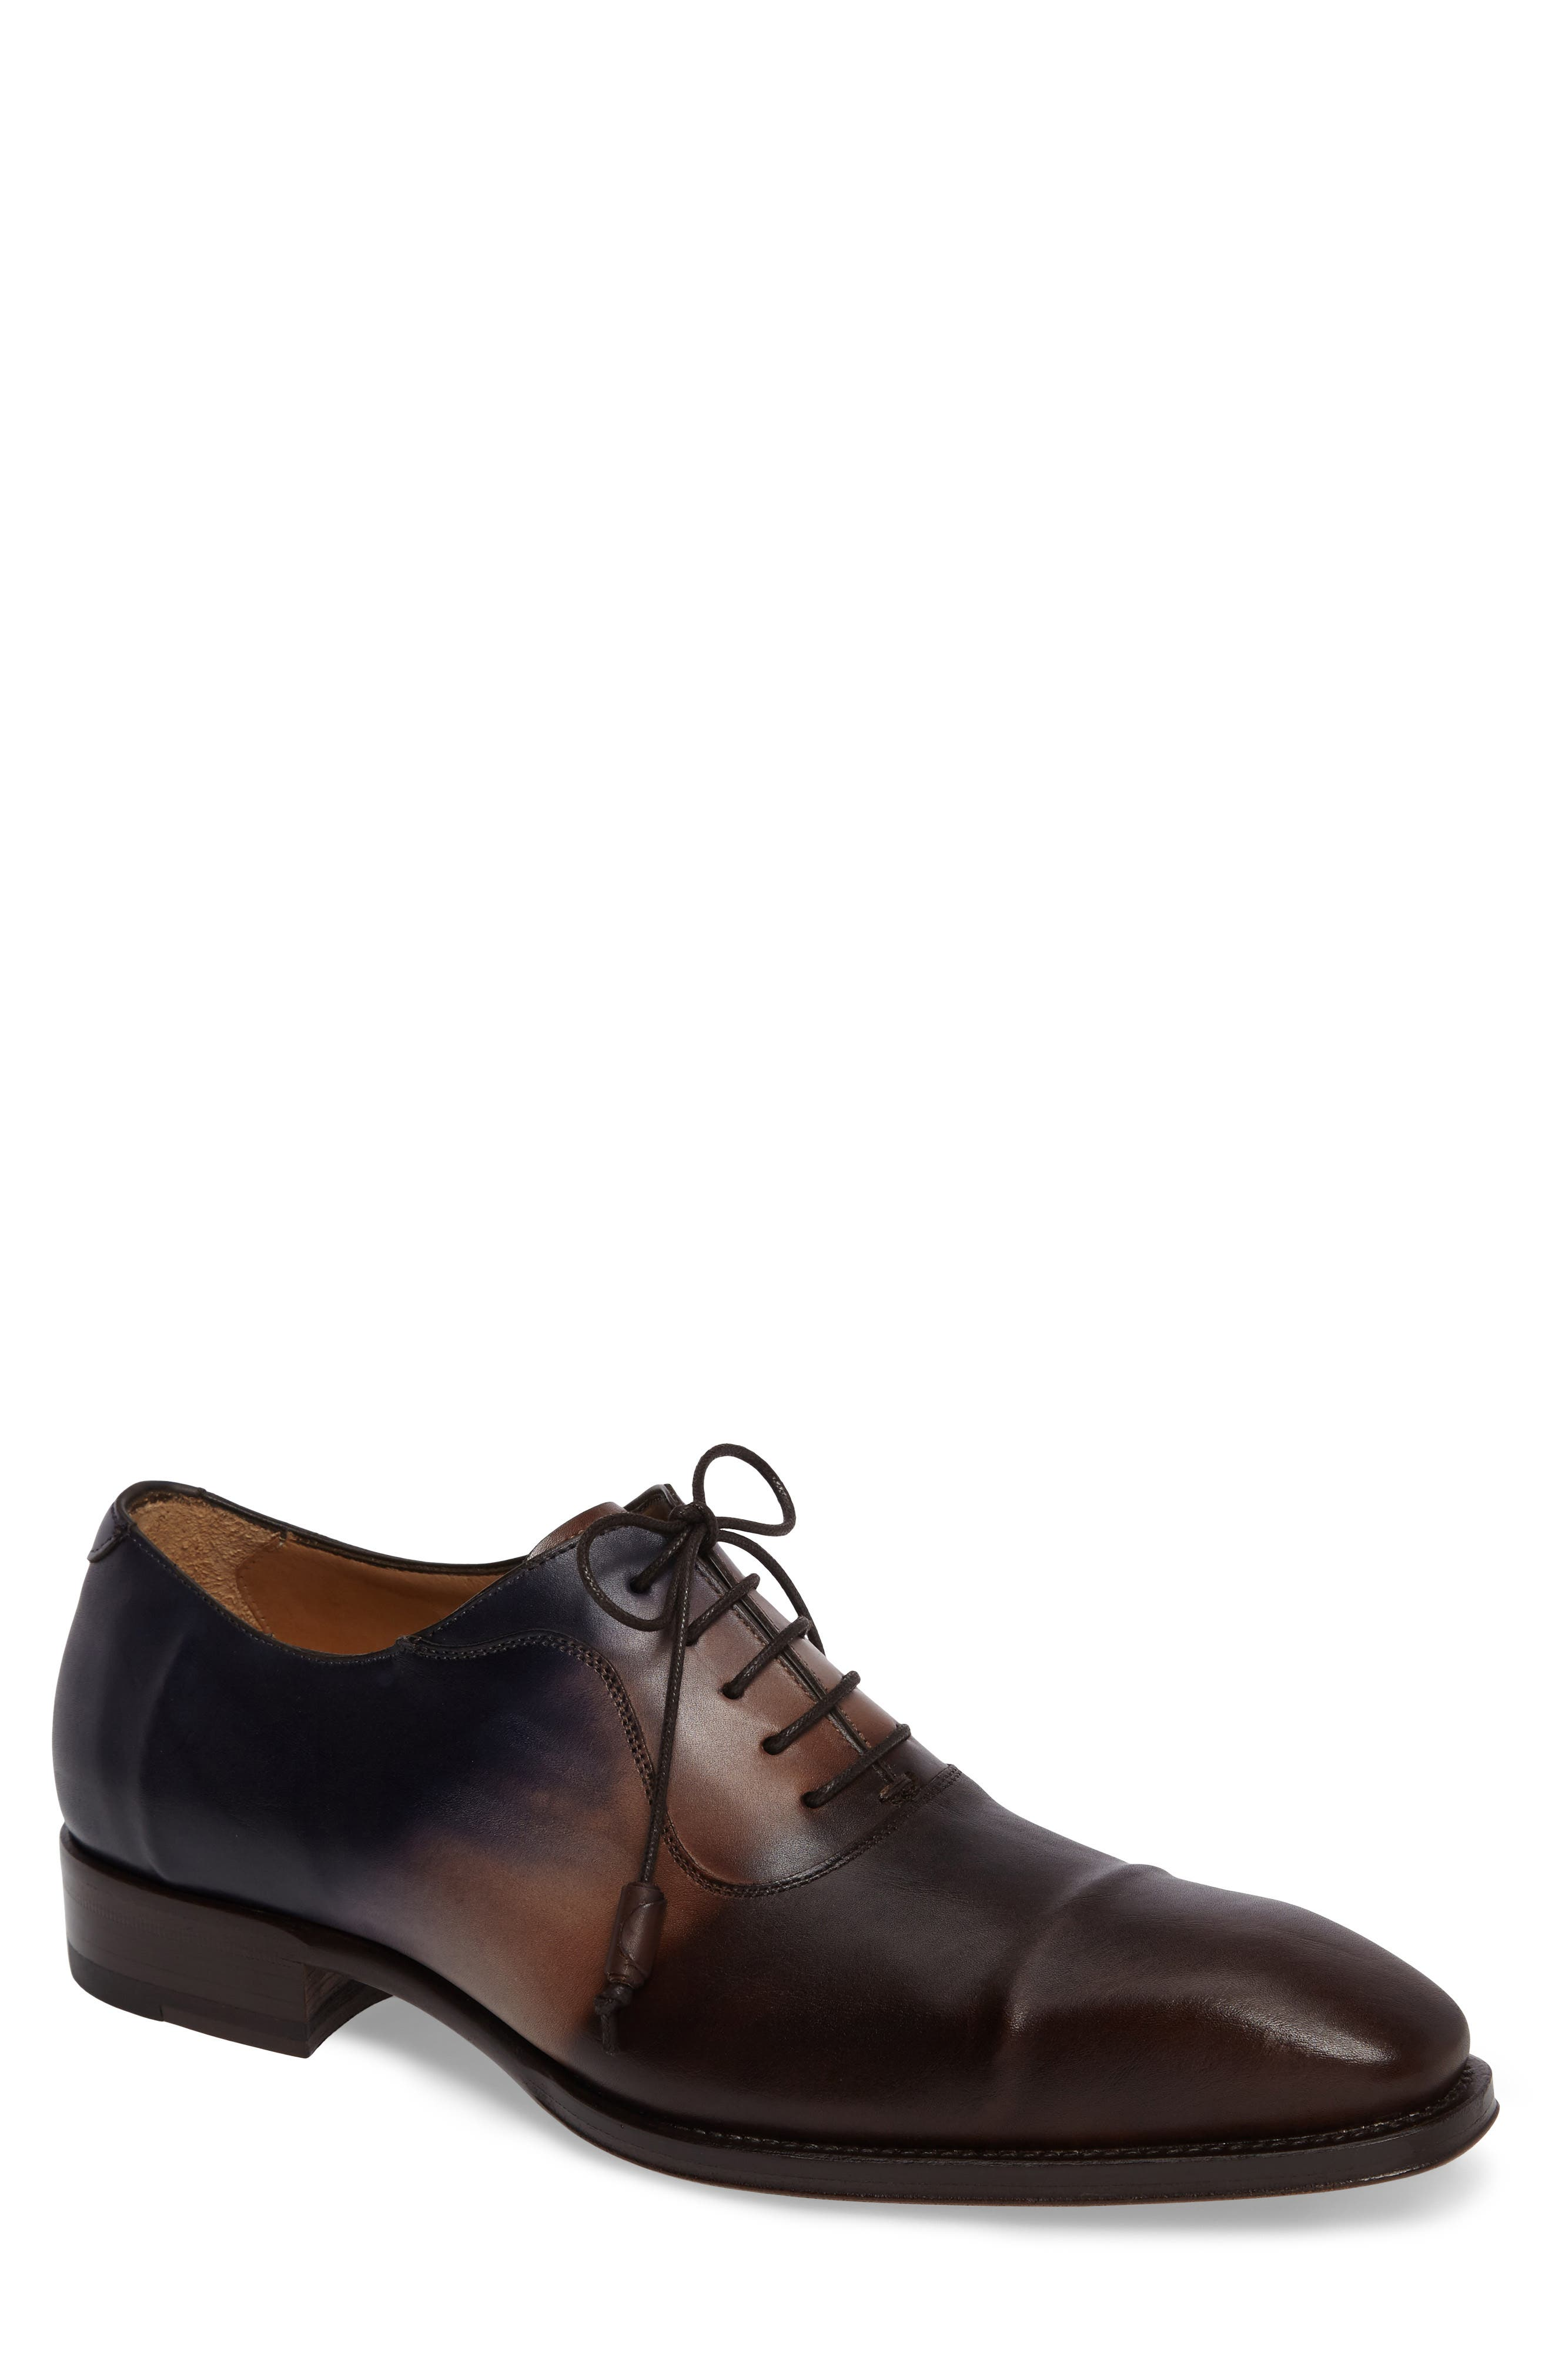 Millet Cap Toe Oxford,                             Main thumbnail 1, color,                             Brown Multi Leather